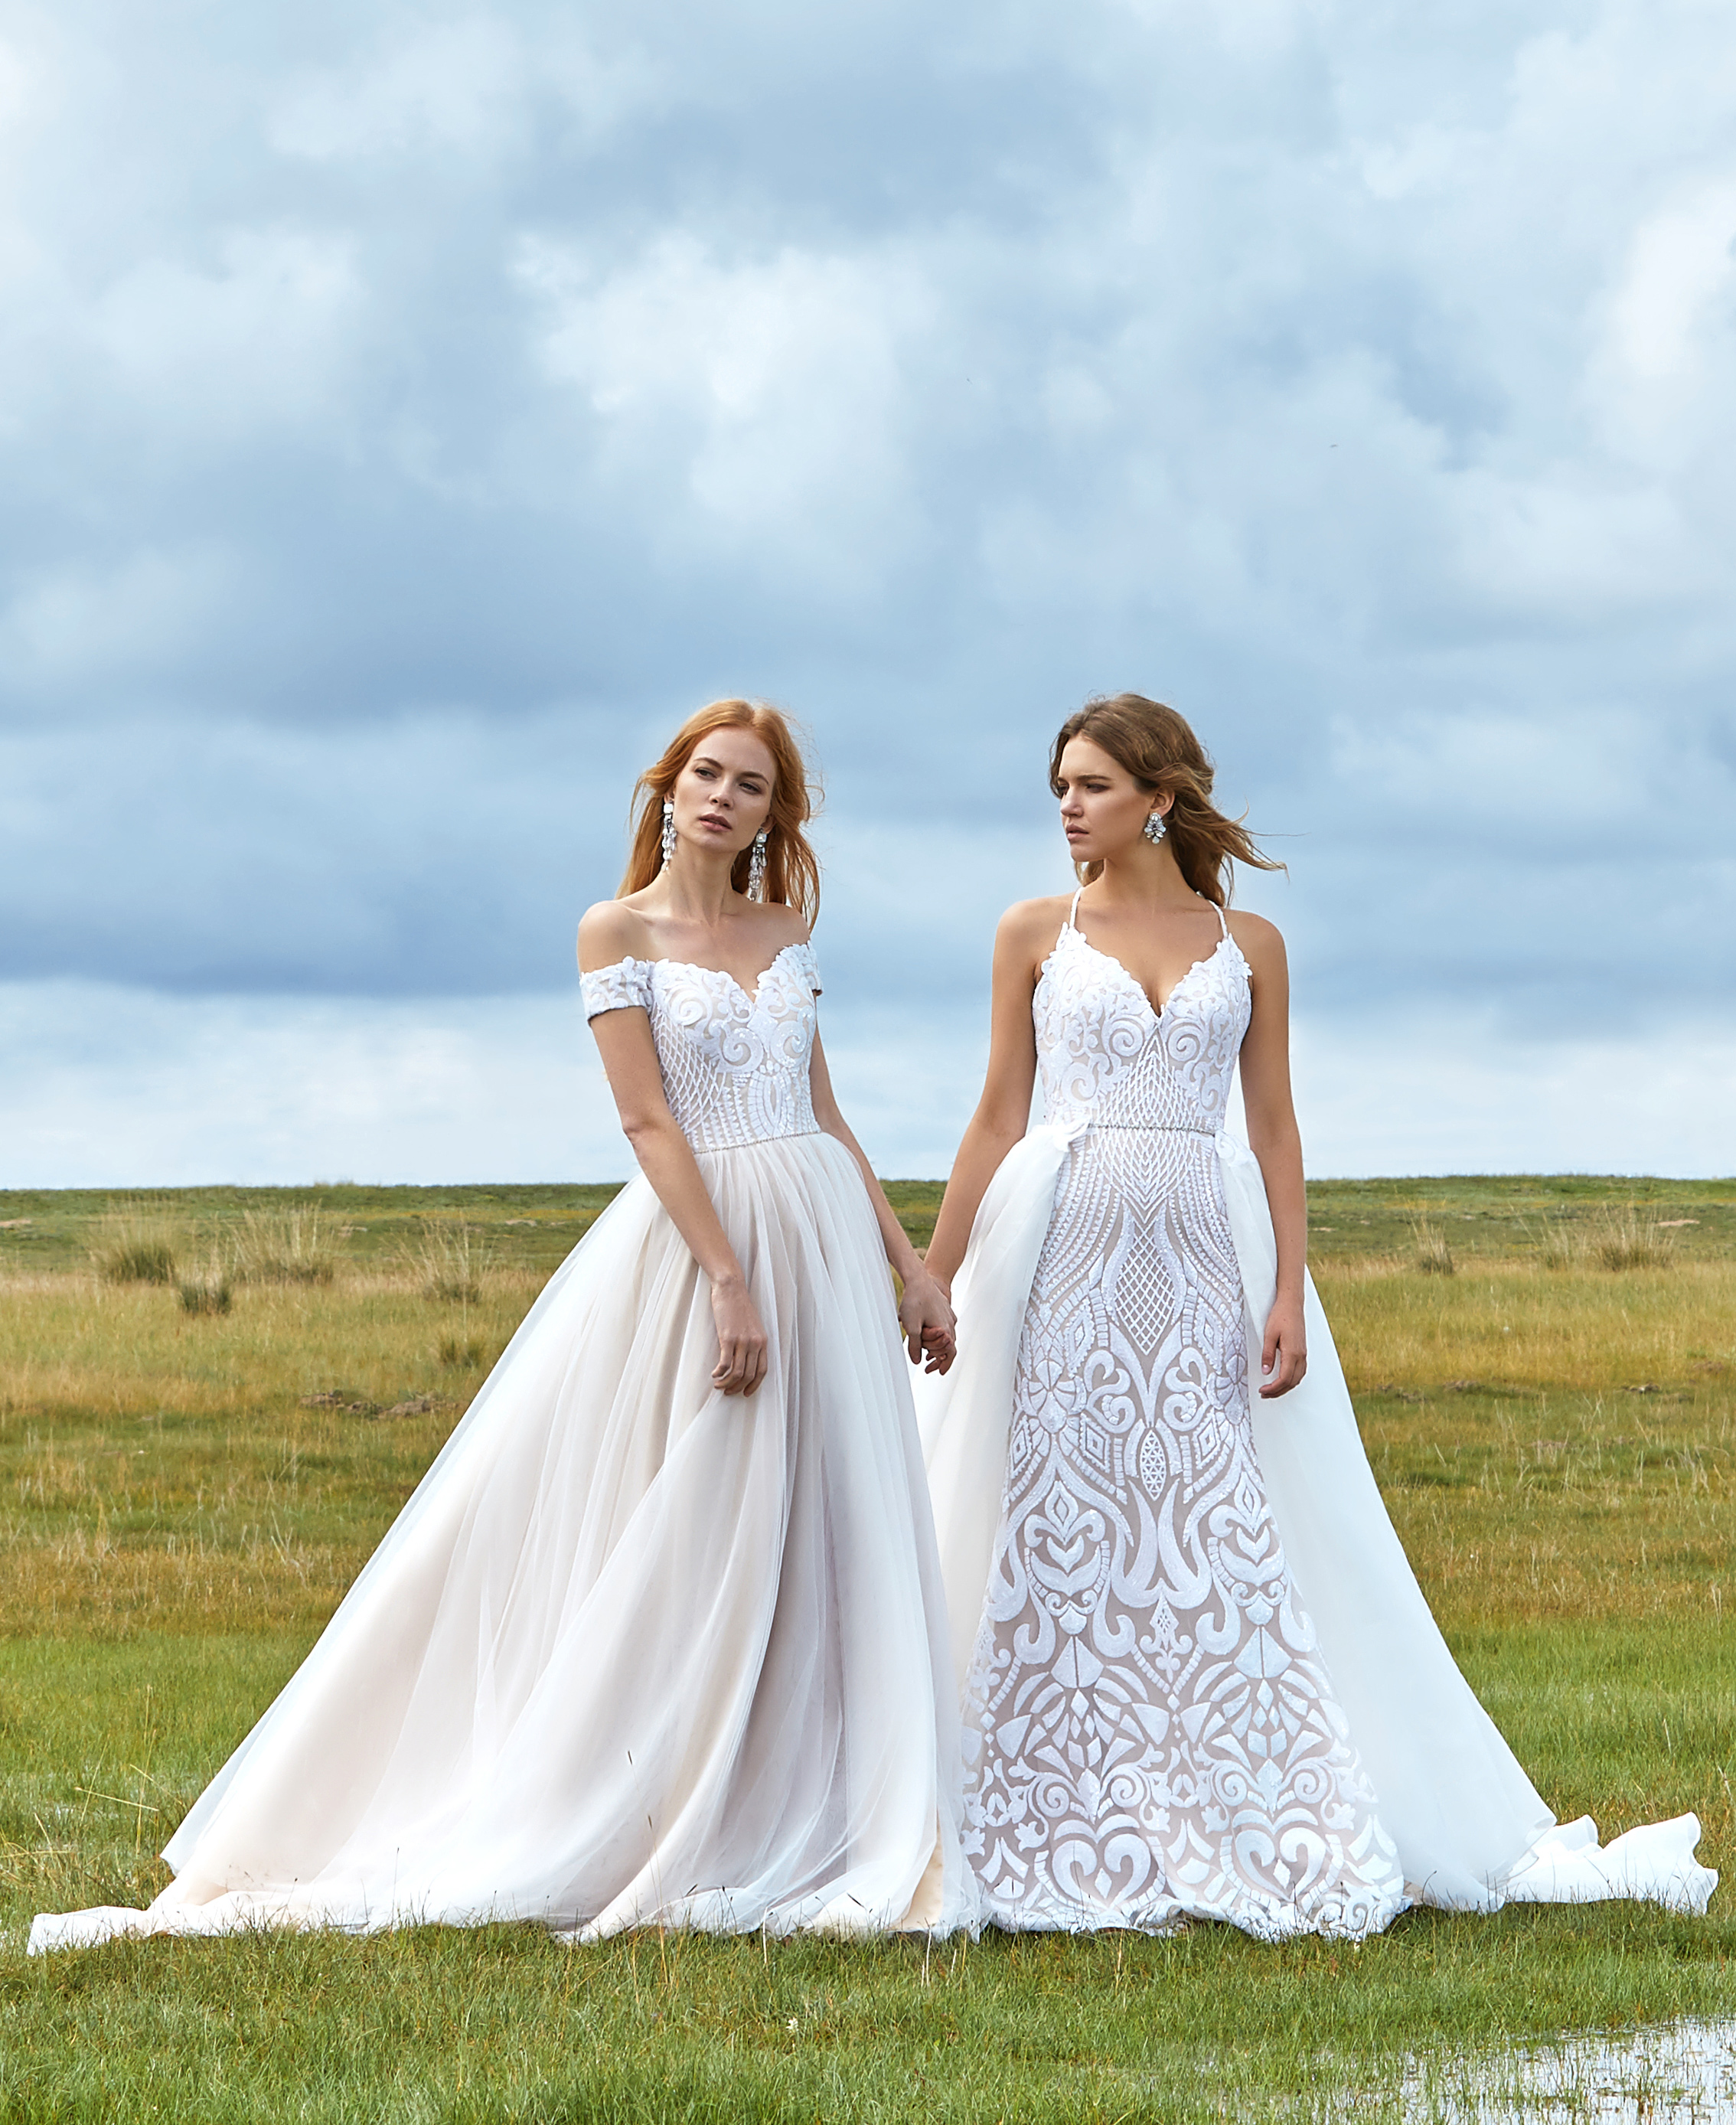 6b782fb9bcb53 CocoMelody Introduced Their Captivating New Bridal Collection for 2019